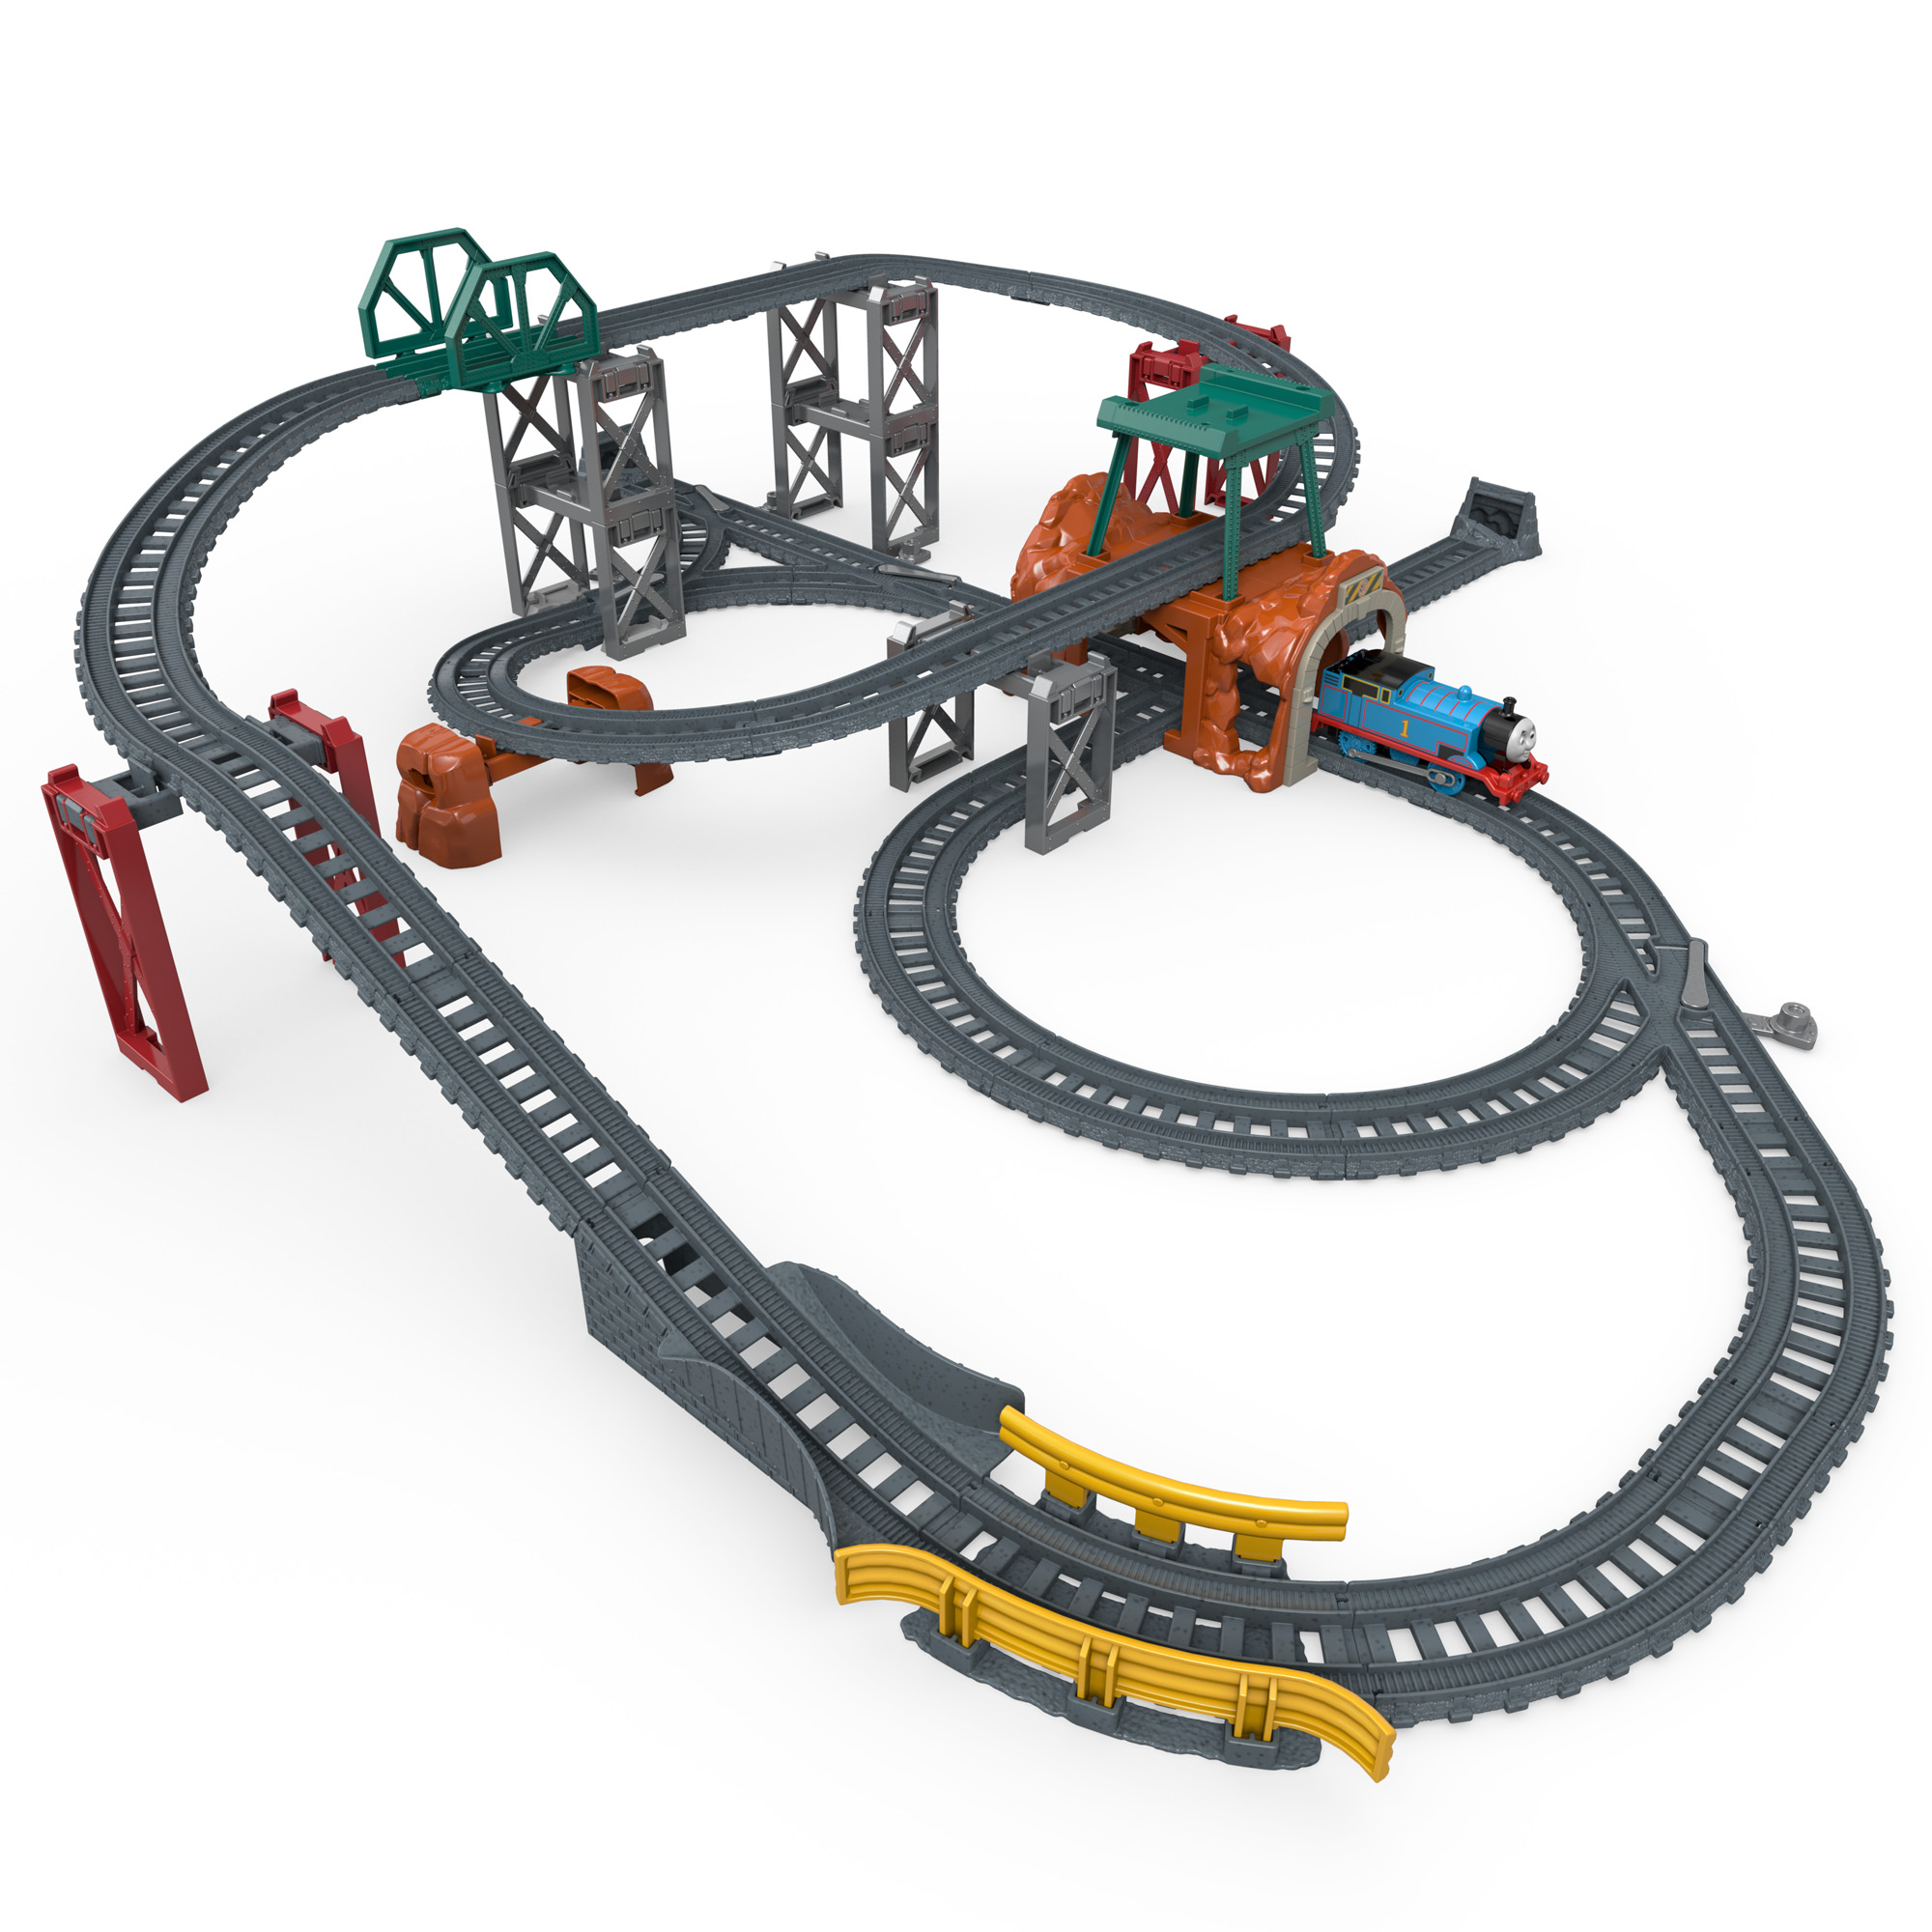 Thomas & Friends TrackMaster 5-in-1 Track Builder Set